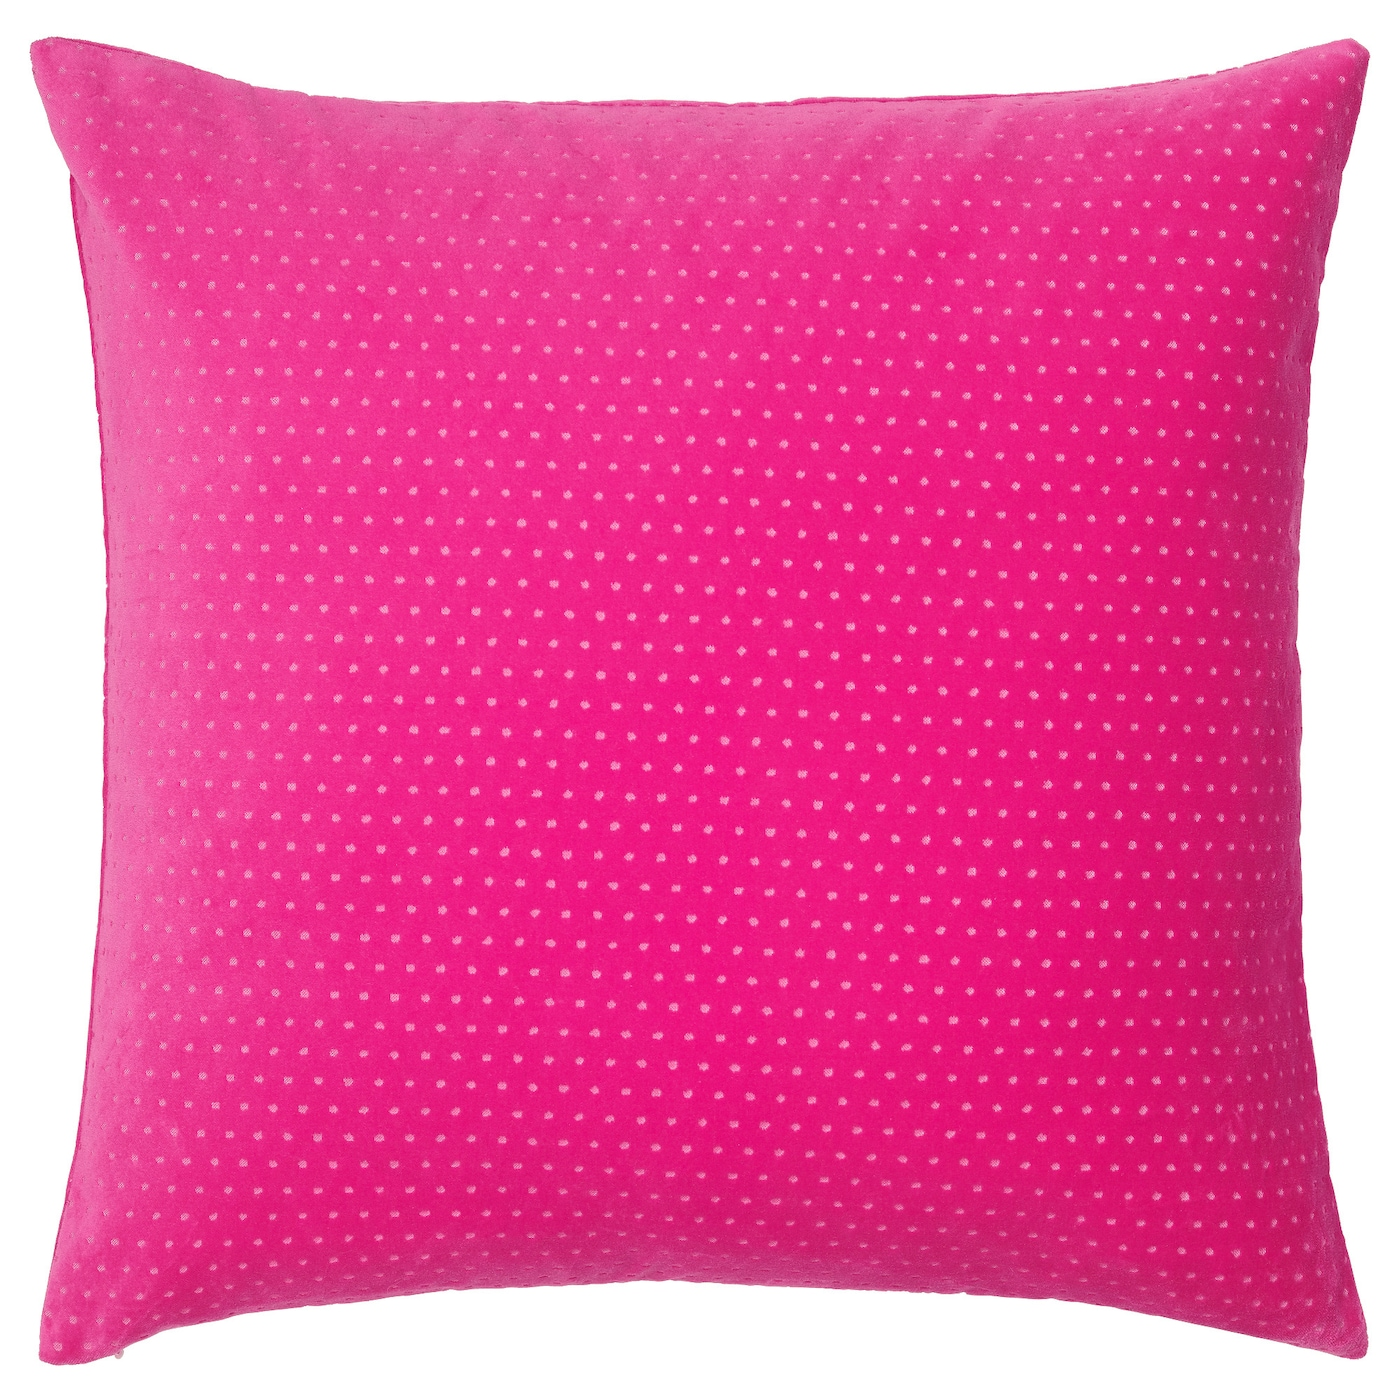 sommar 2018 cushion cover pink 50x50 cm ikea. Black Bedroom Furniture Sets. Home Design Ideas